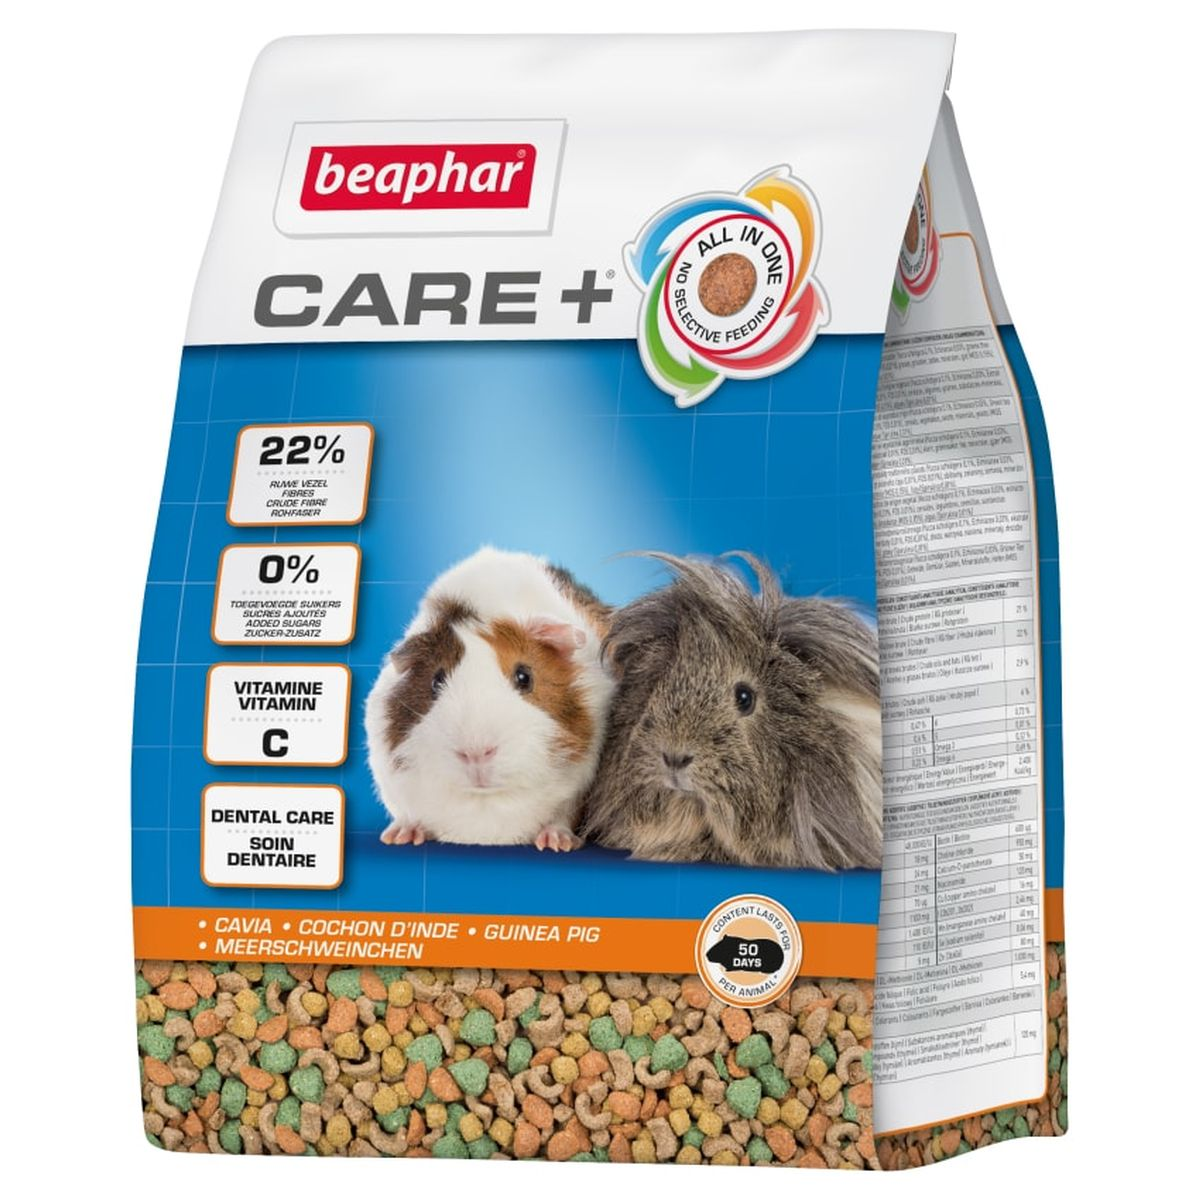 Beaphar Care Cavia